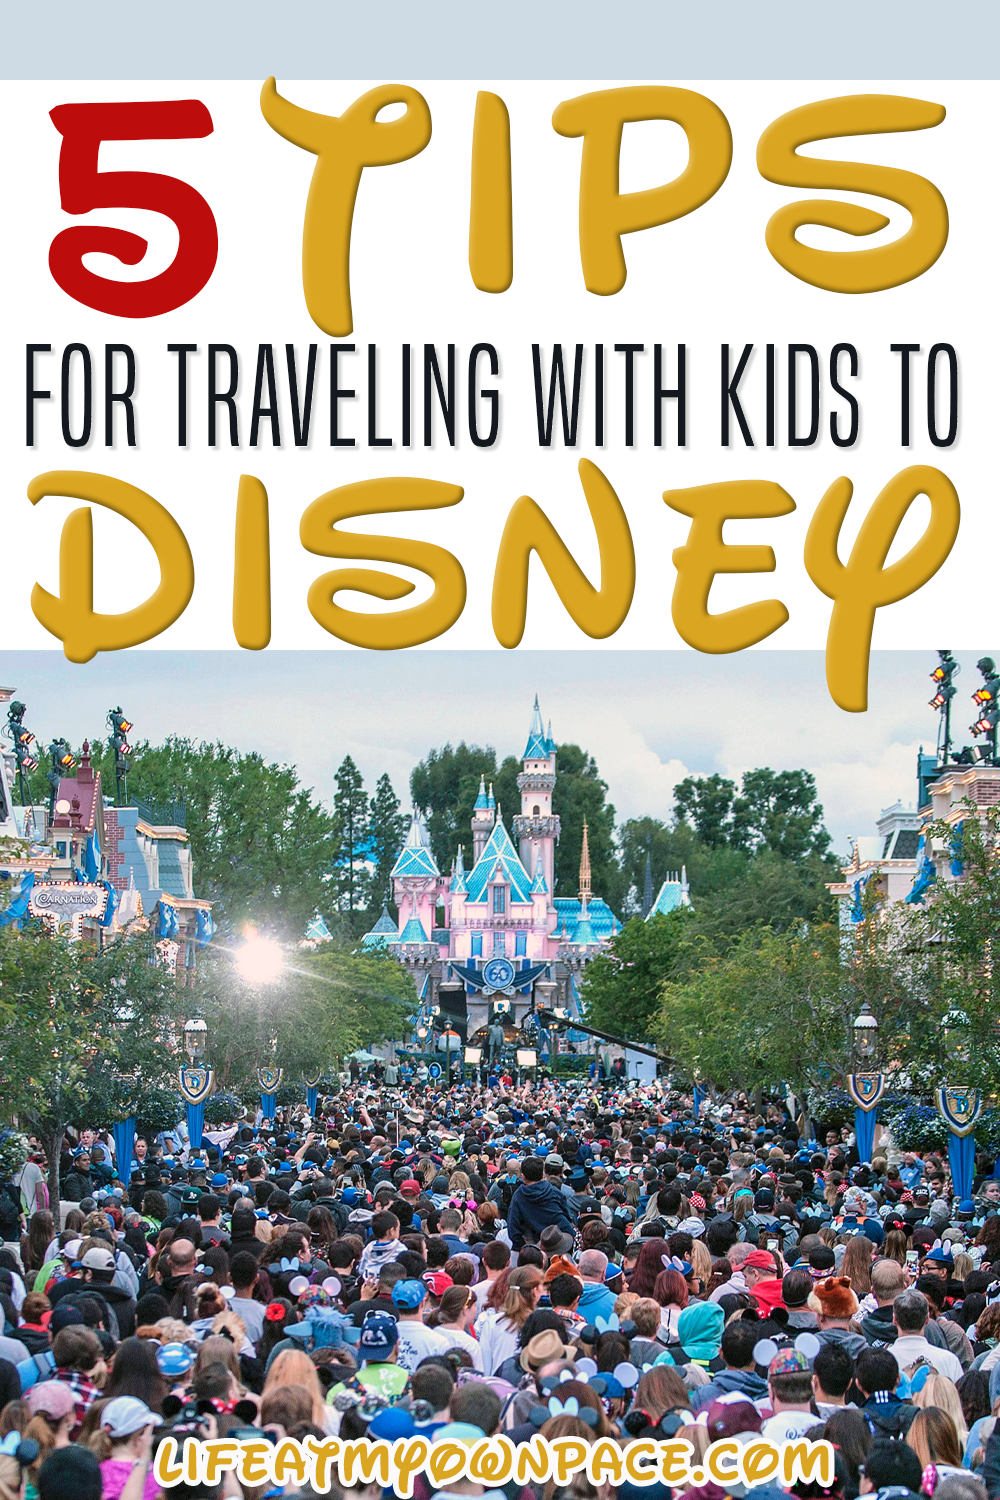 After years of visiting Disney use these 5 Tips we learned to implement and make your next trip to Disney the best one yet! Kids get grumpy and tired. The crowds are huge. They may not have a reaction we expect or want when seeing a character for the first time. The list goes on. | Life at My Own Pace @lifeatmyownpace #disneytips #disneyhacks #disneyvacation #disneykids #disneyfamilyvacation #disneysummervacation #disneytrip #lifeatmyownpace